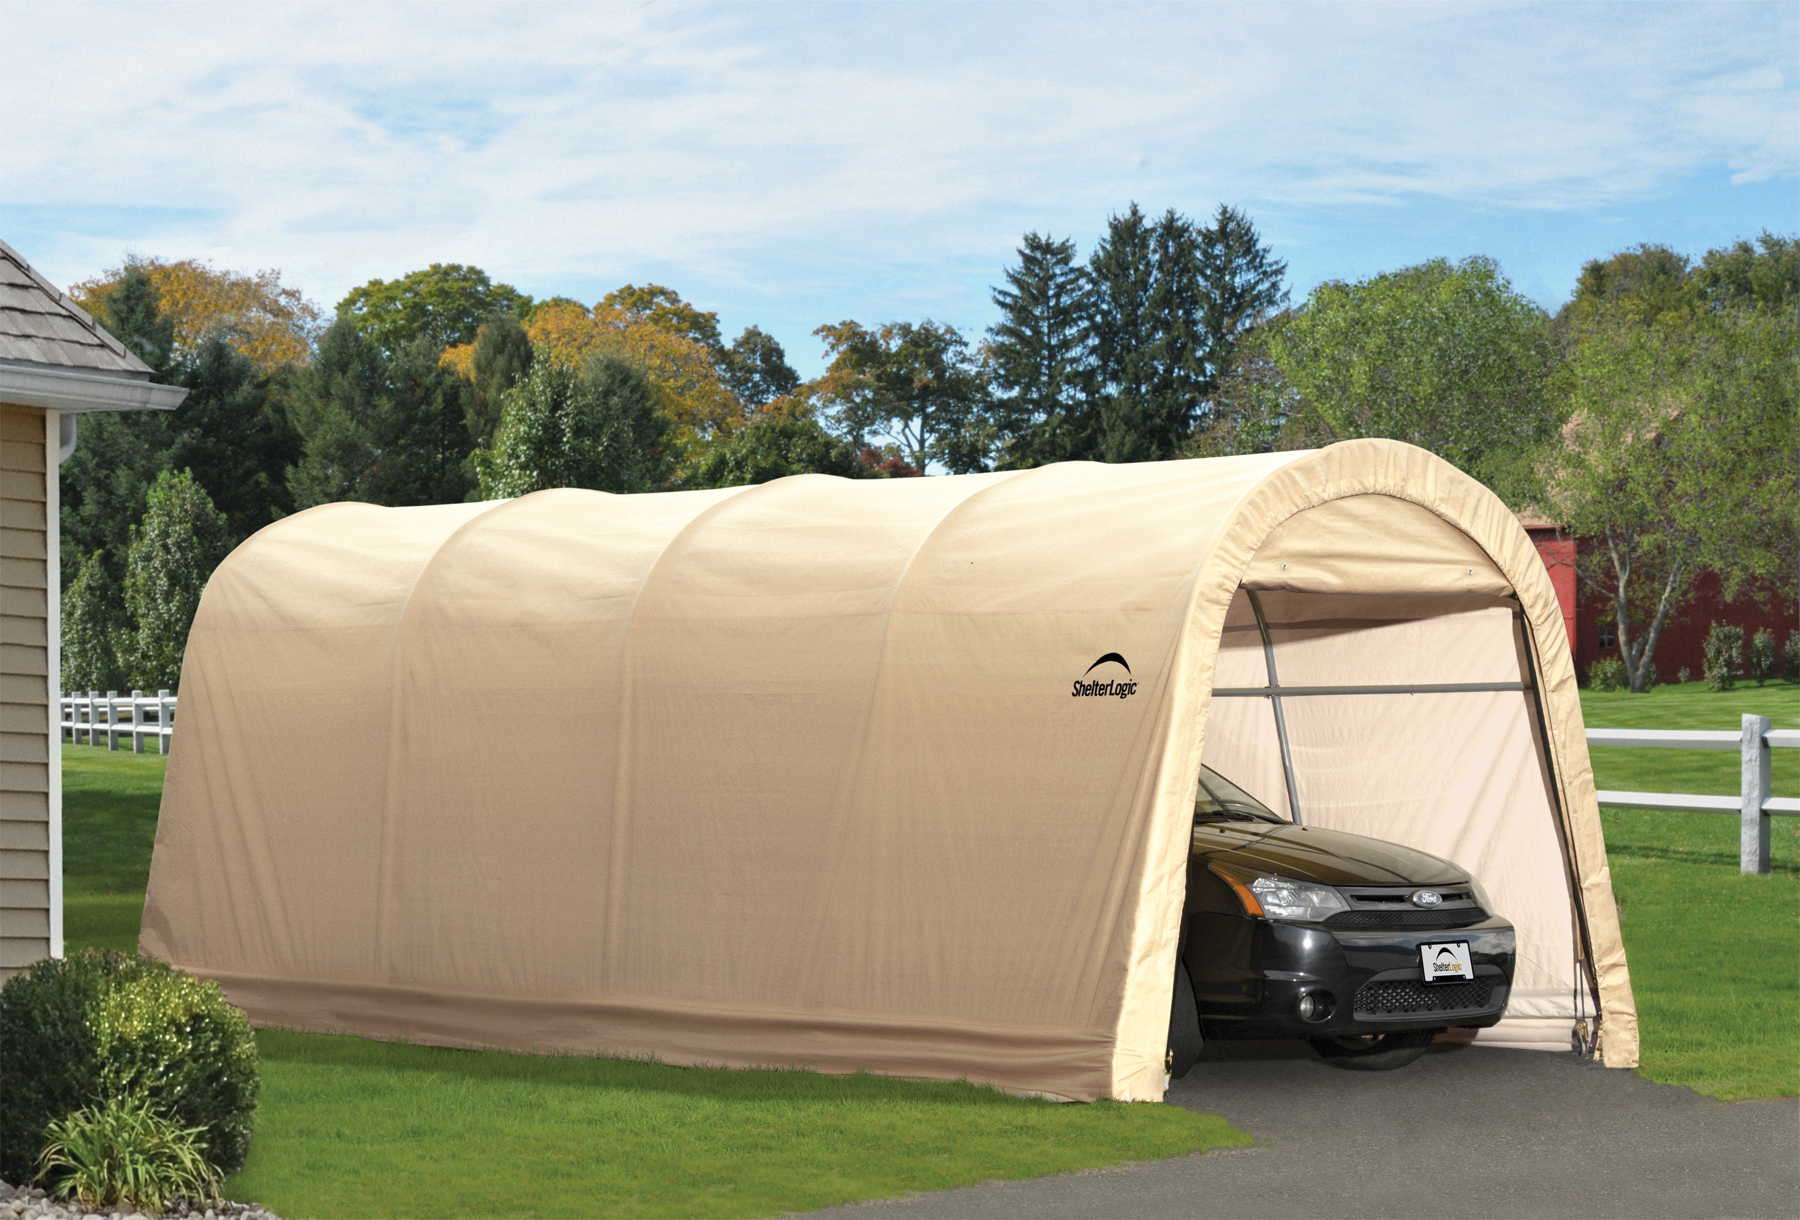 RoundTop 10 x 20 carport kit & Portable Car Garage Shelters | The best portable carport portable ...